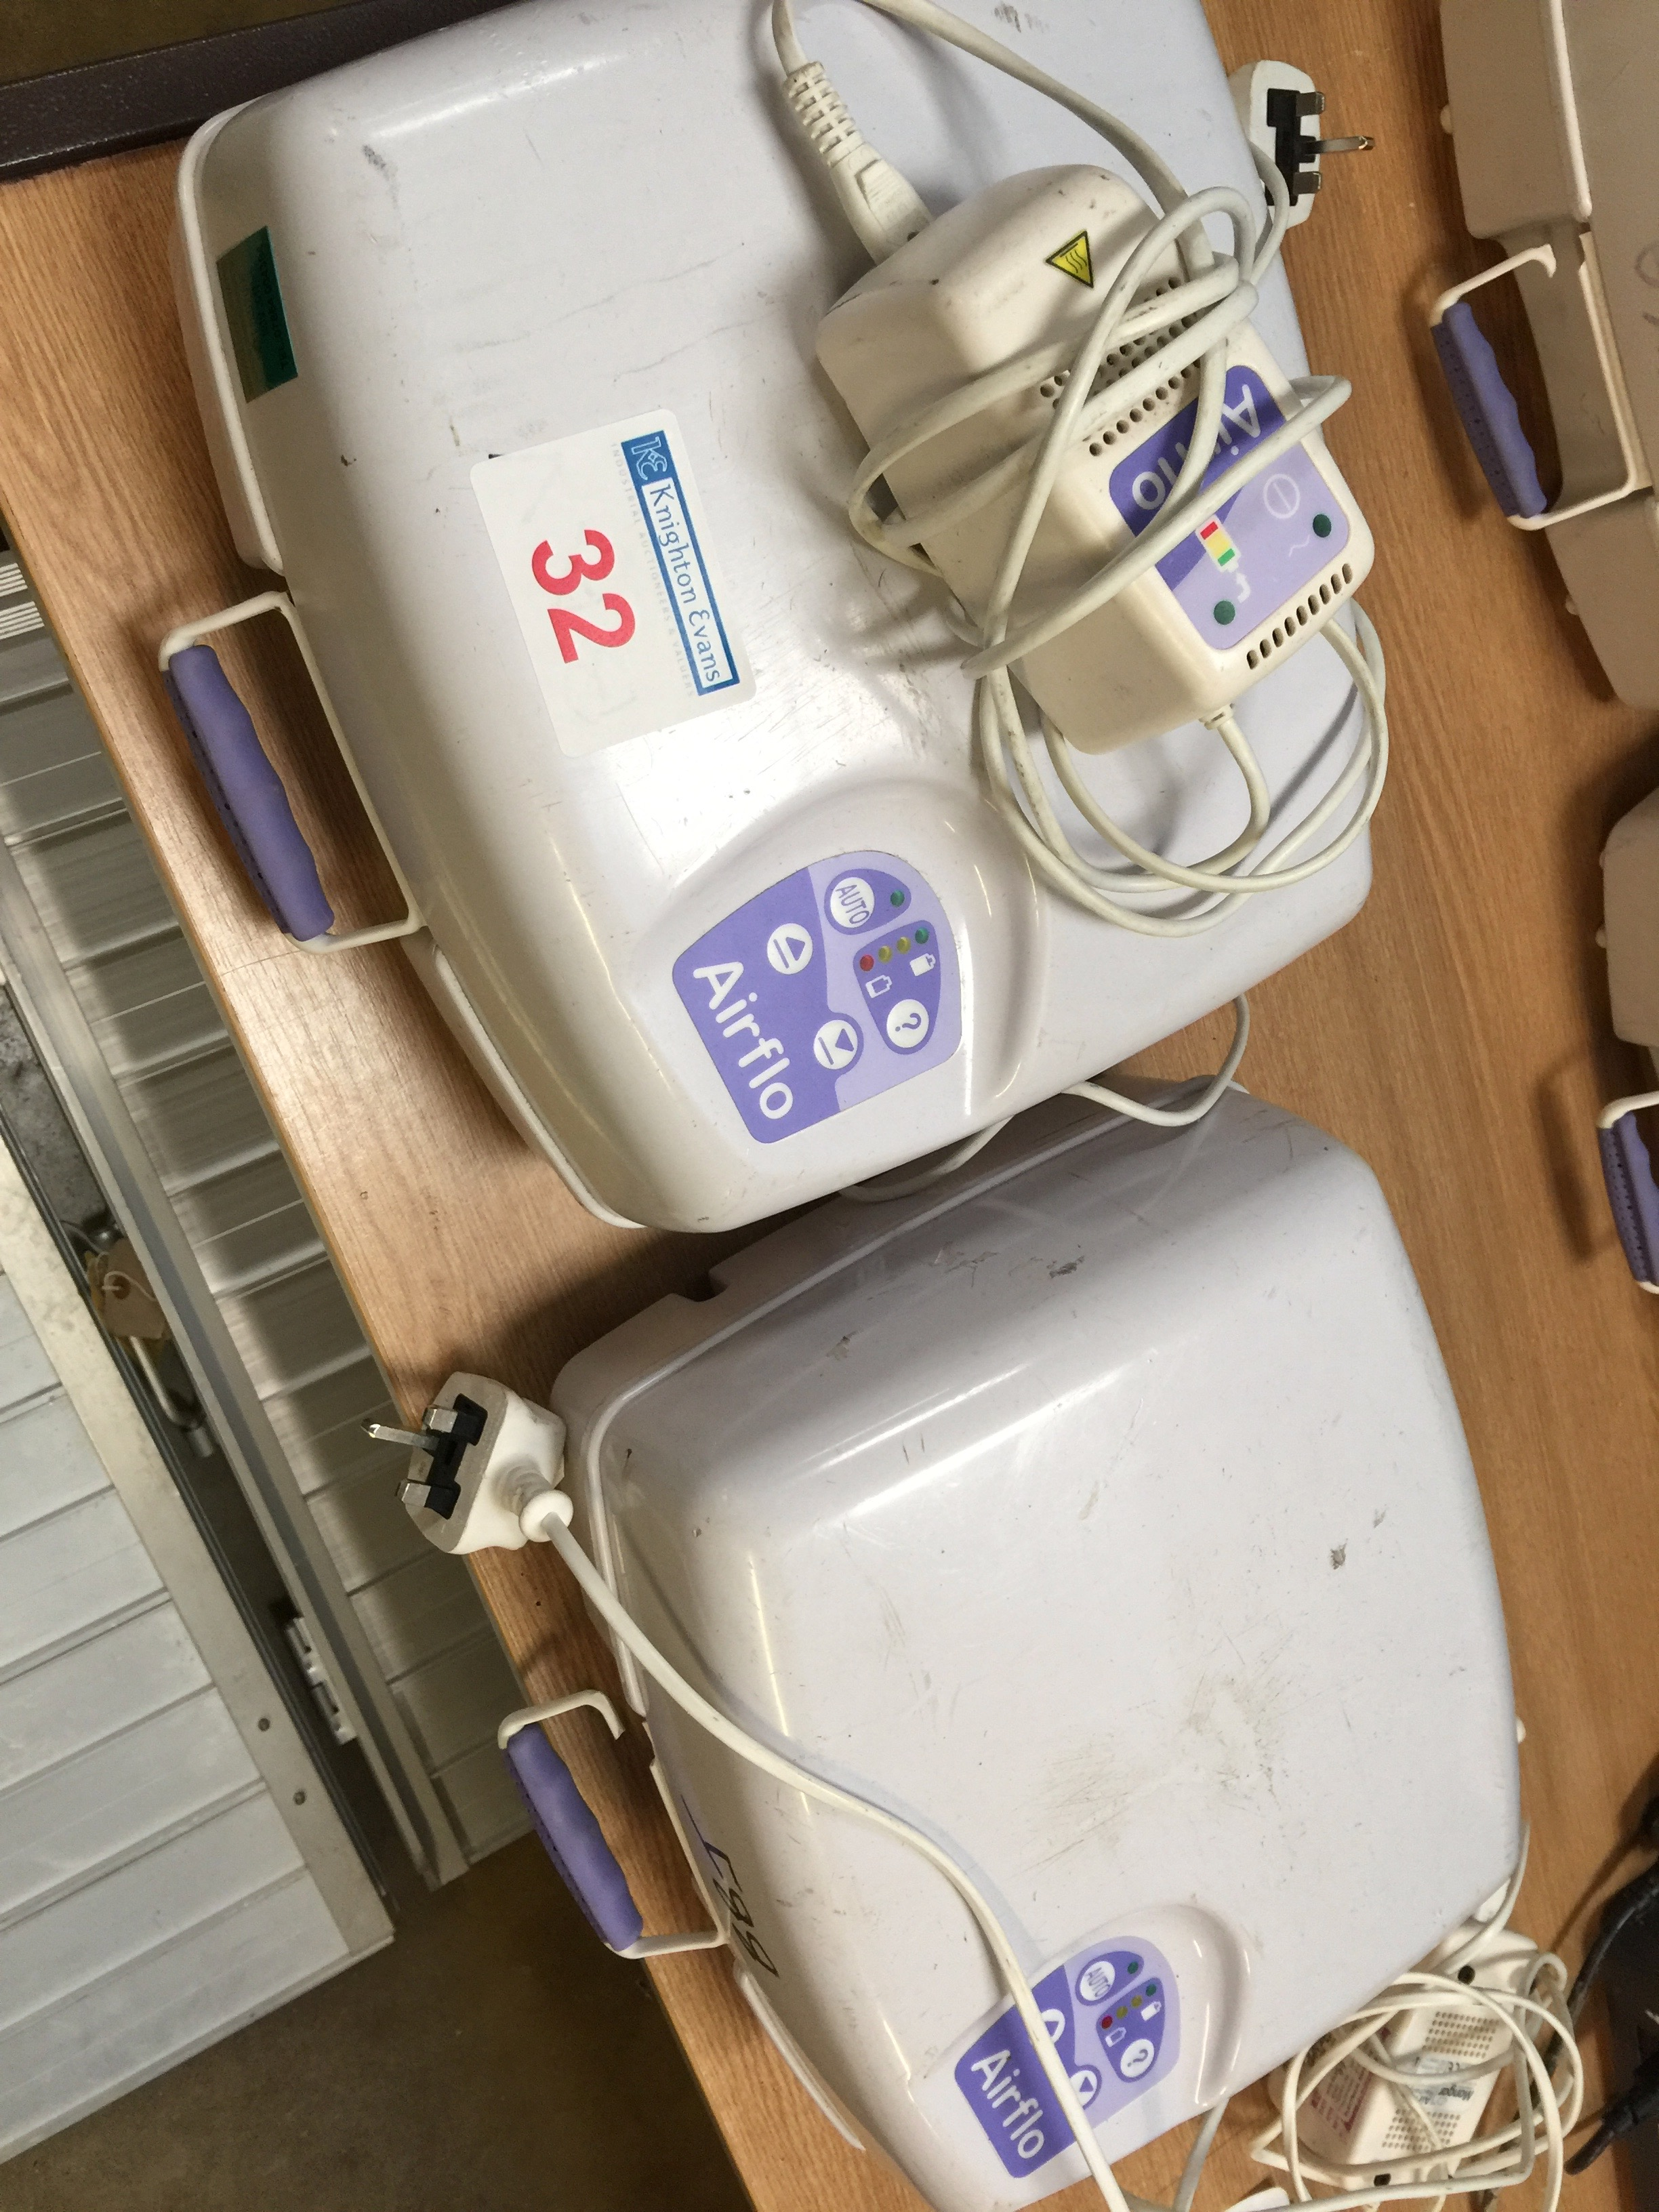 Lot 32 - 2 Mangar Air-Flow Mk2 cushion compressors with PSU/Chargers